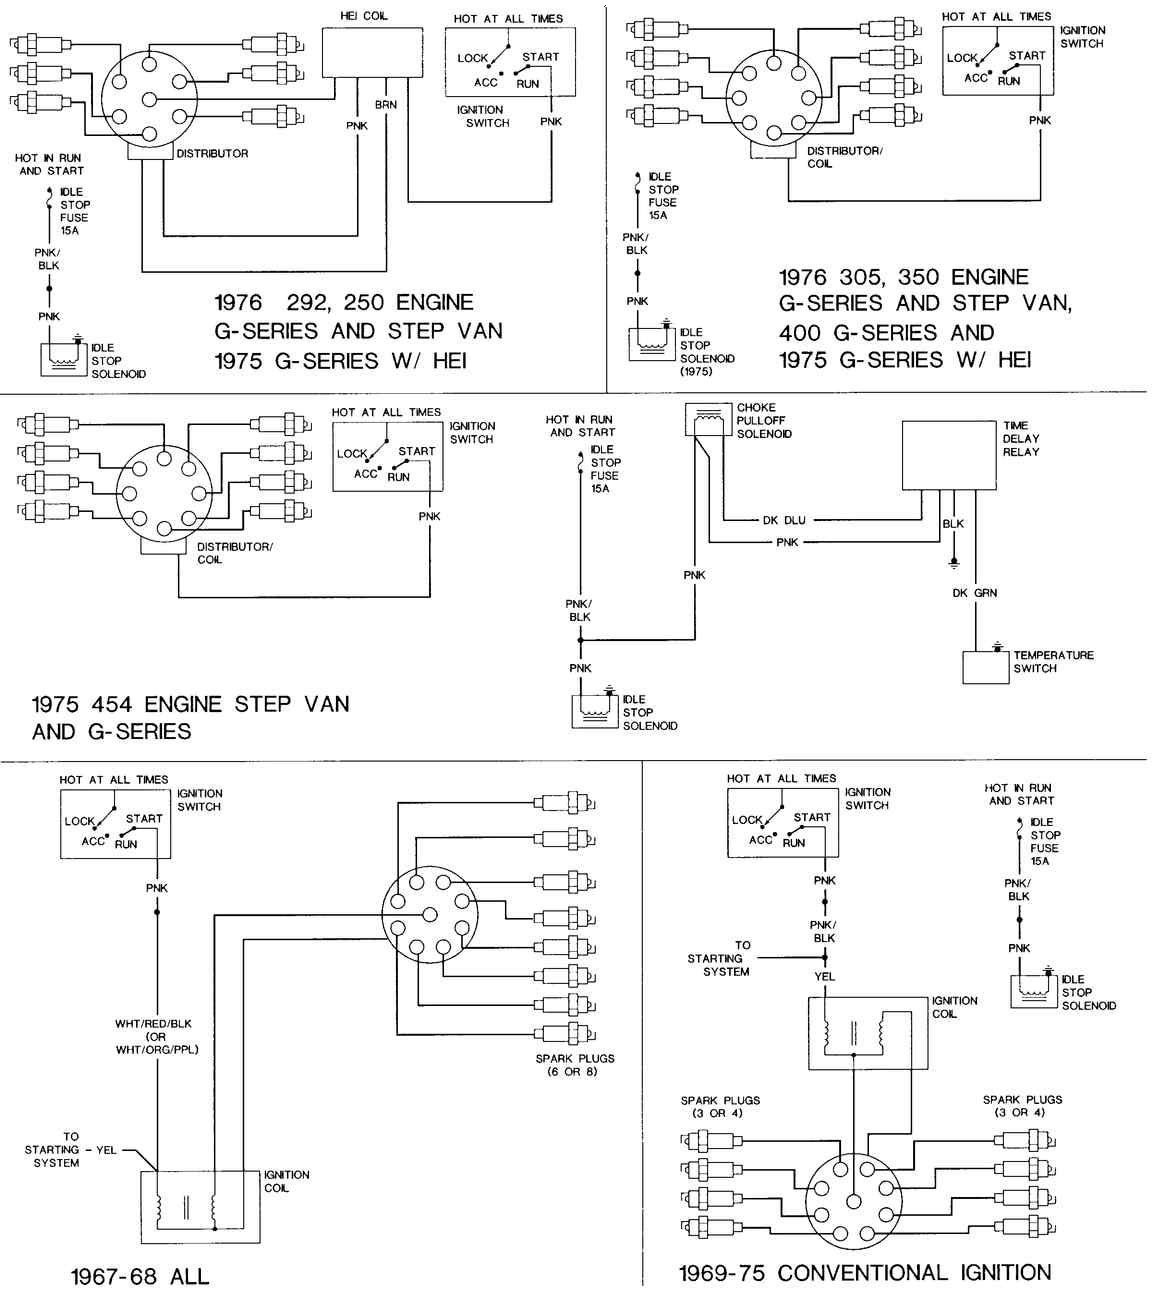 1987 Chevy Ignition Wiring S10 Radio Diagram 1976 Ford Van Hight Resolution Of 67 G10 Diagrams Parts Chevrolet Forum Enthusiasts Pickup